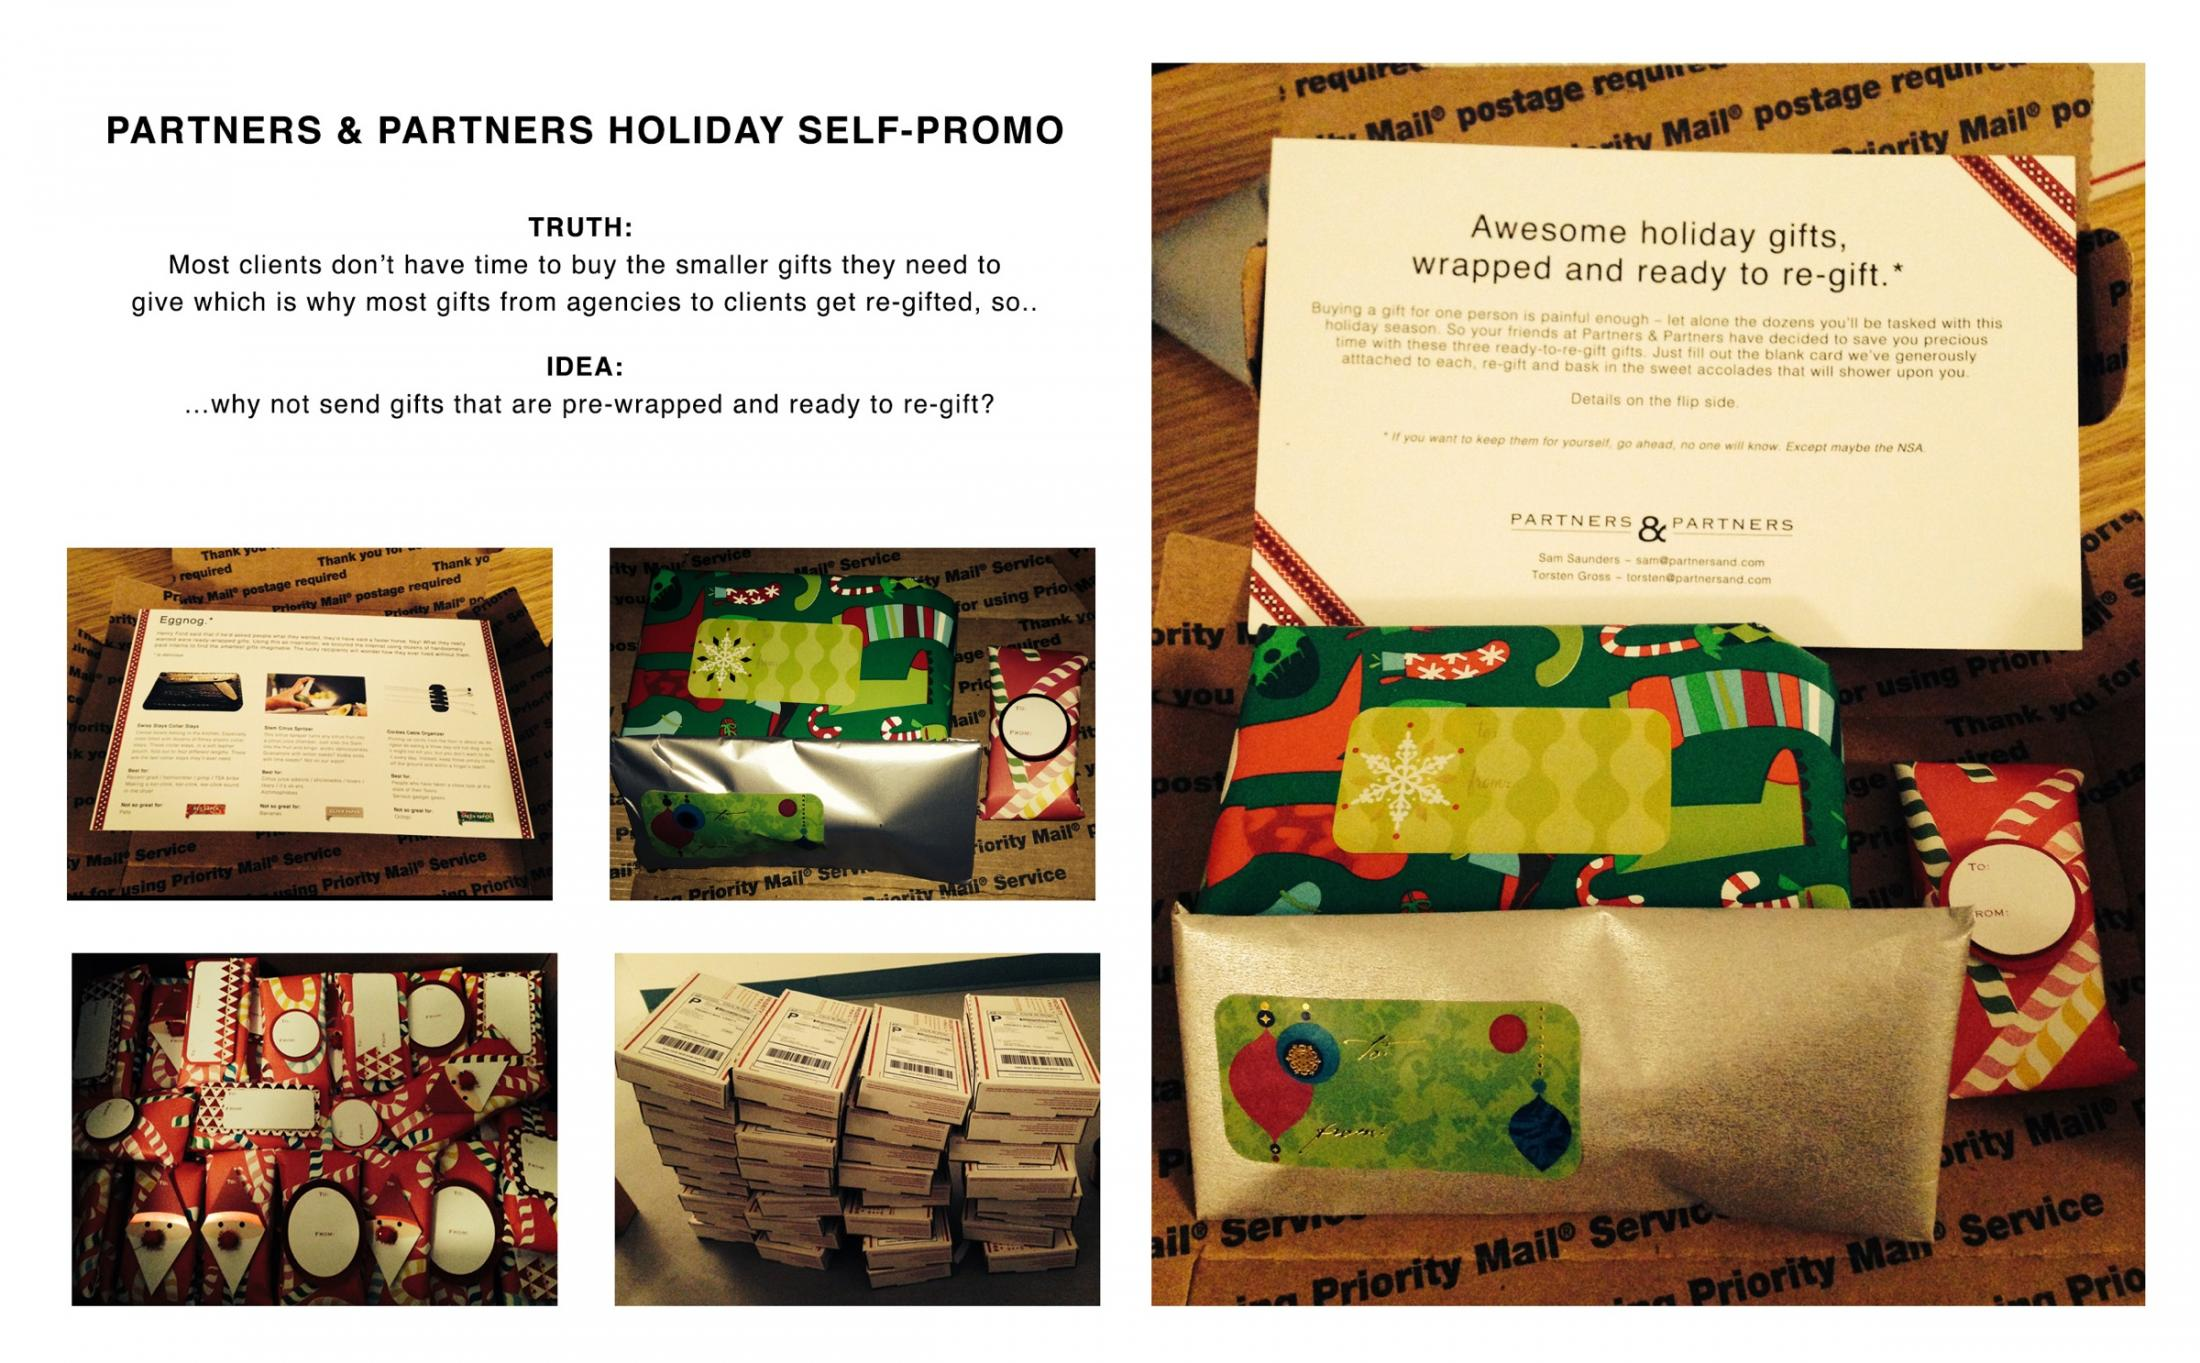 Partners & Partners Direct Ad -  Ready to re-gift